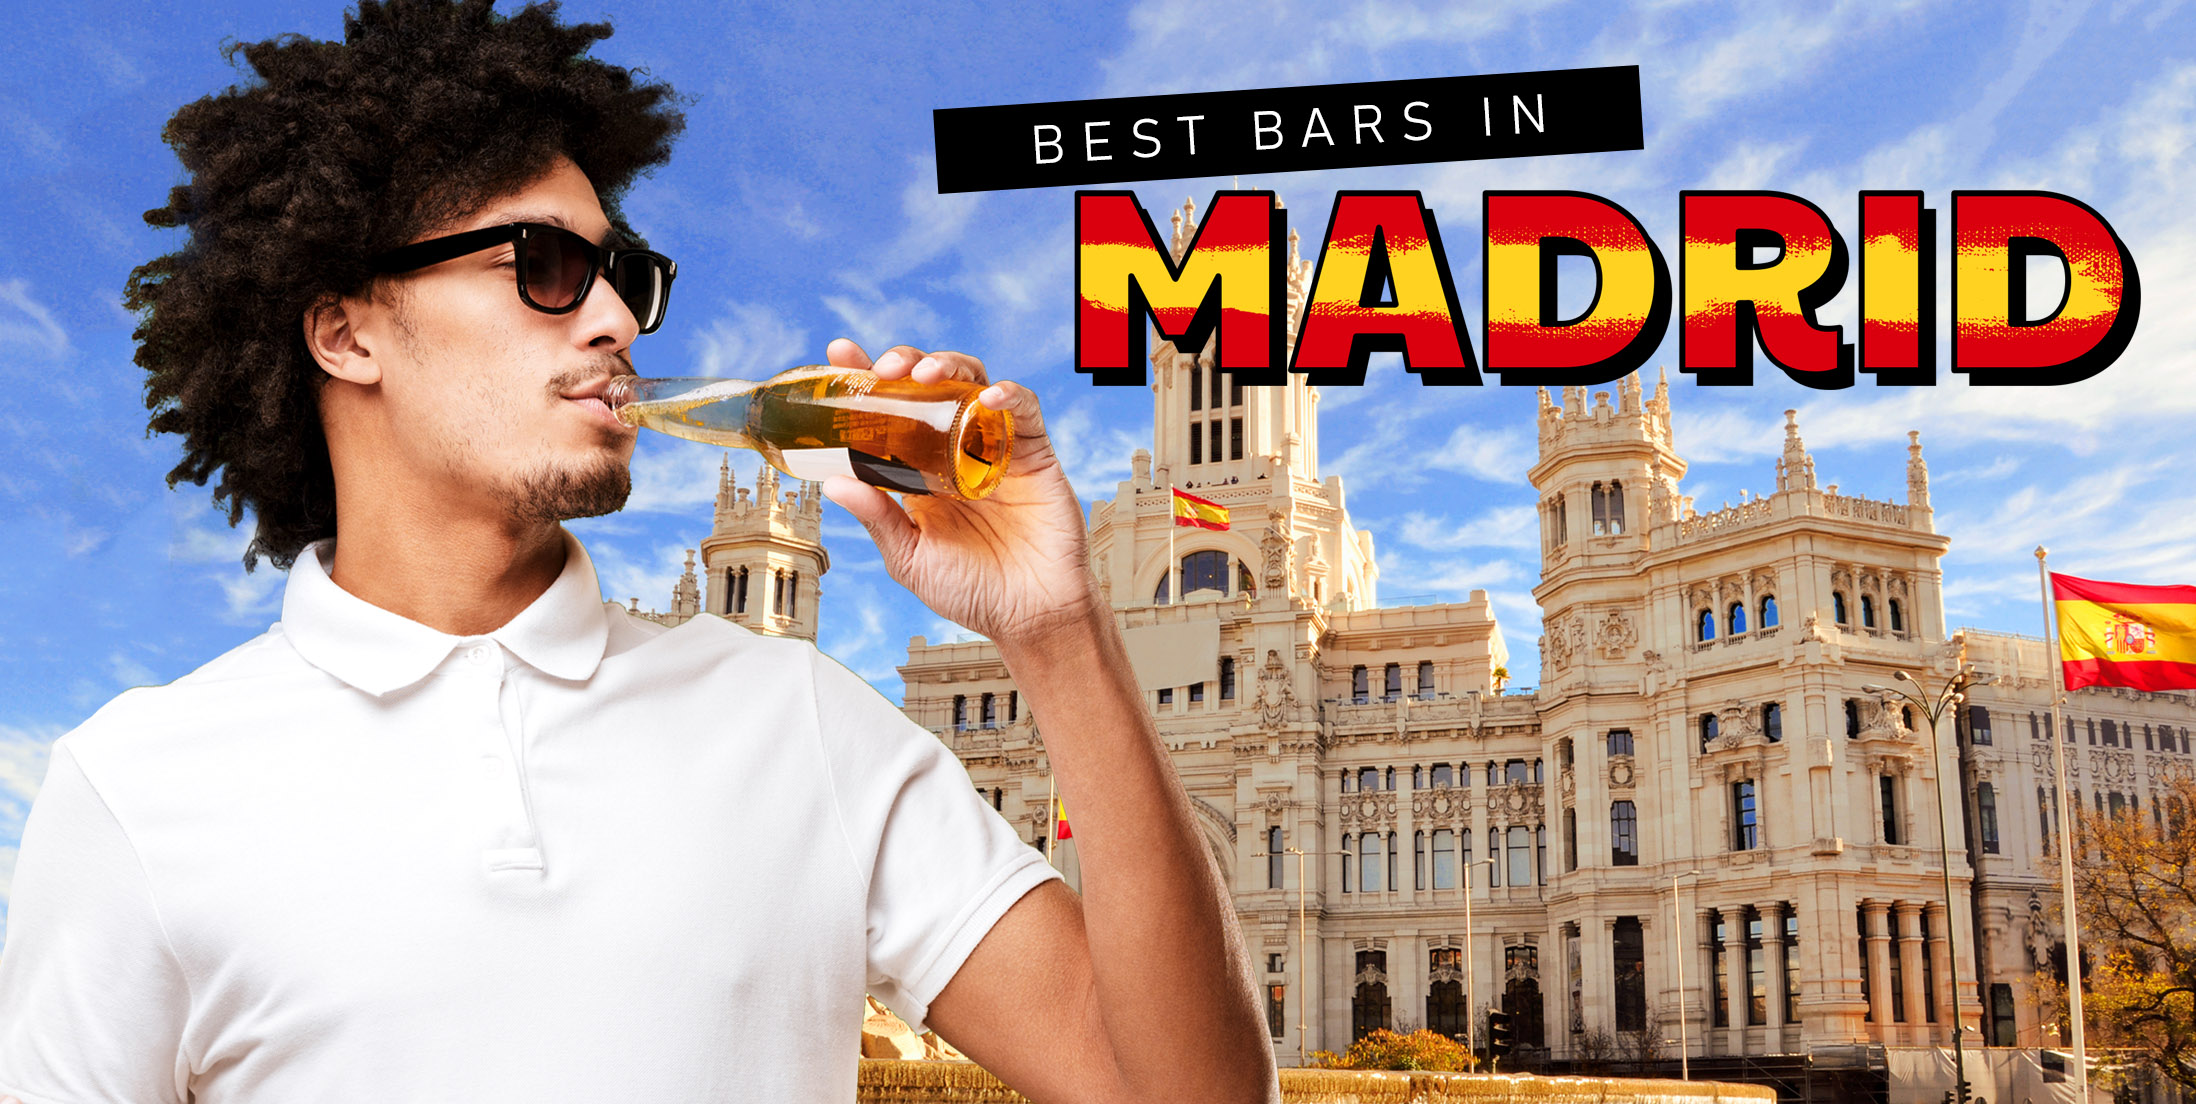 Best Bars in Madrid